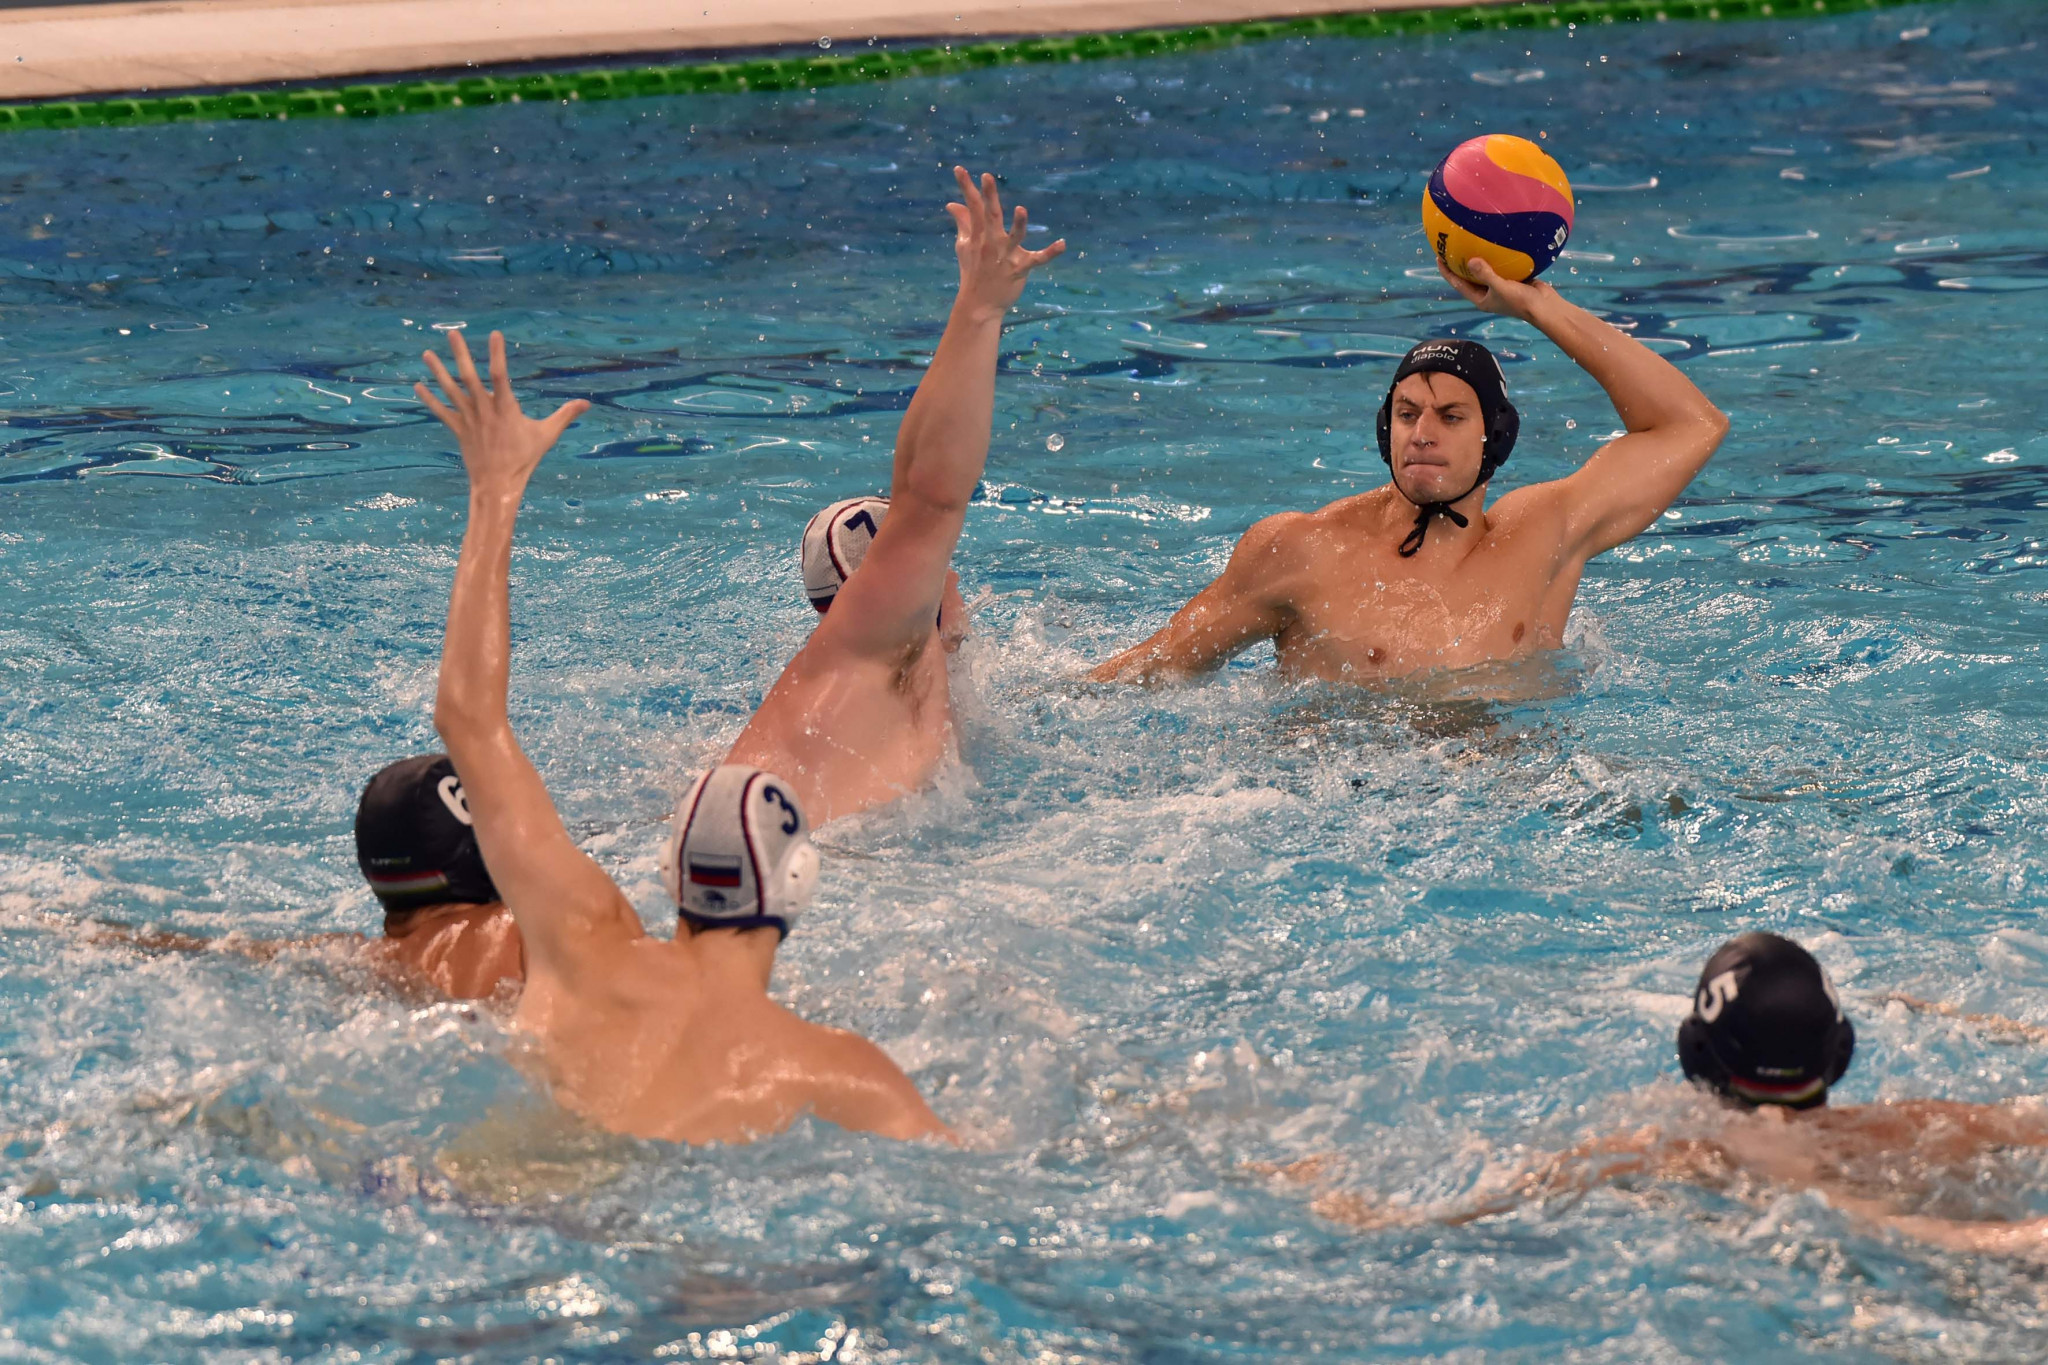 Hosts finish Naples 2019 on a high with water polo victory